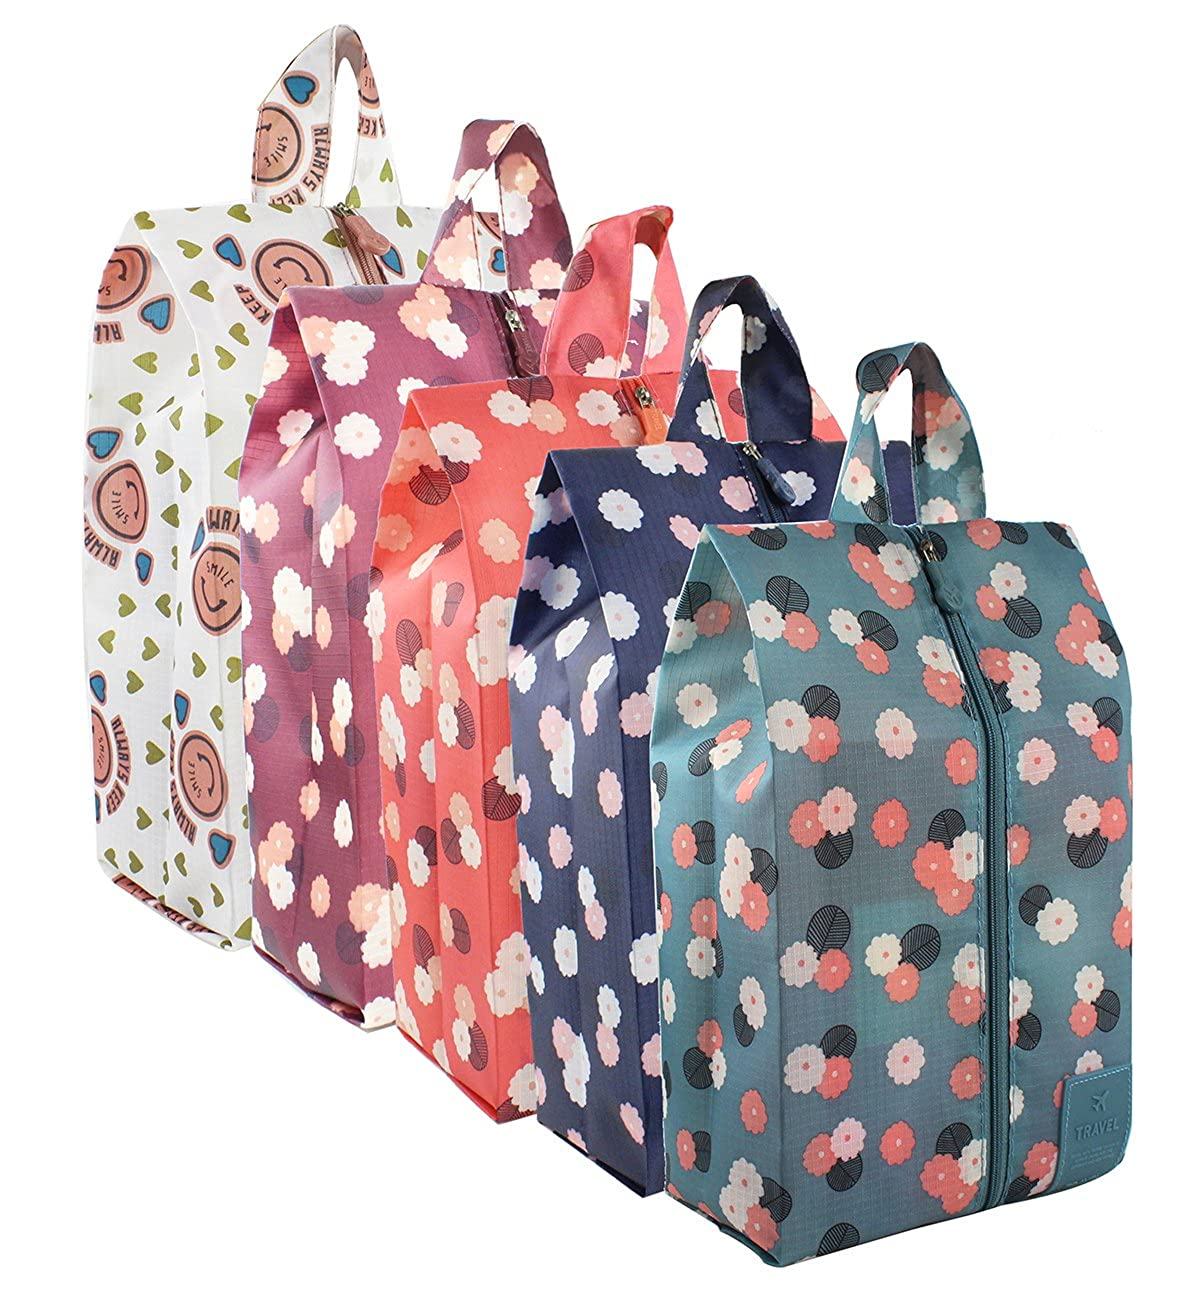 bbb1897180dc Consists of 5 bags, blue, burgundy, red, navy with daisy and pink smiling  face print. ☆【WATERPROOF MATERIAL】High quality nylon, lightweight,  portable, ...